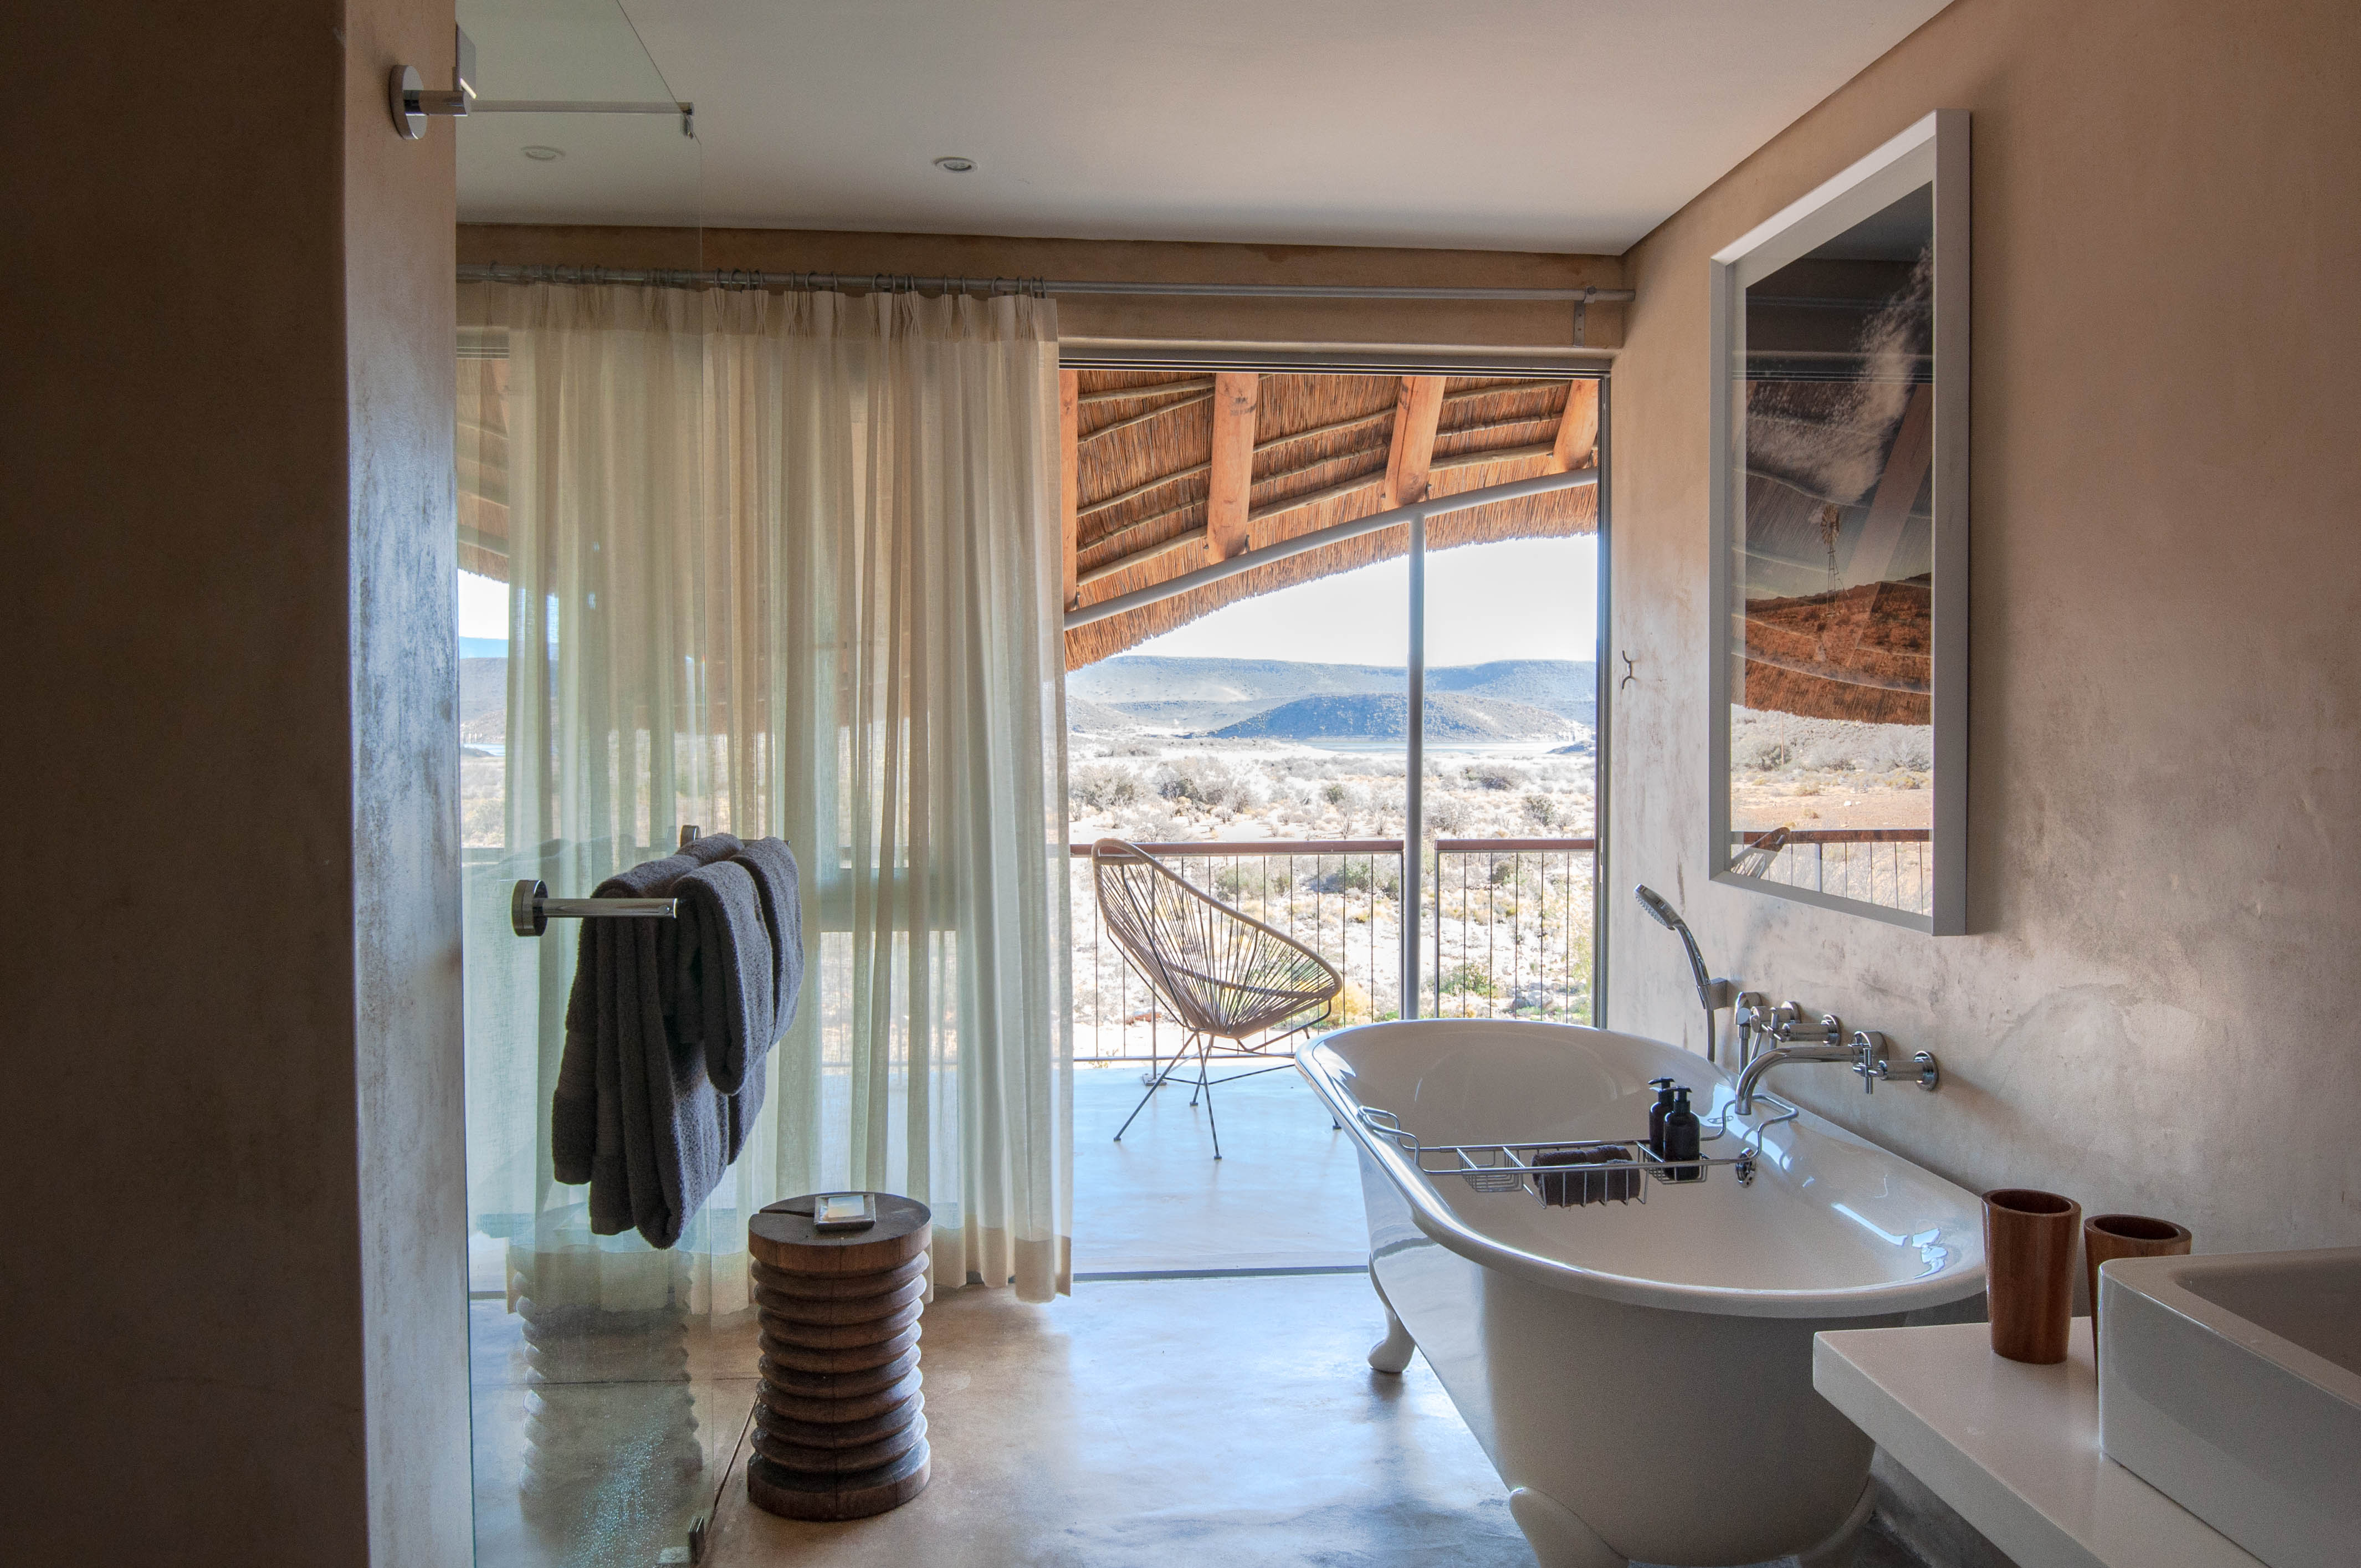 Gondwana-Family-Lodge-Bathroom